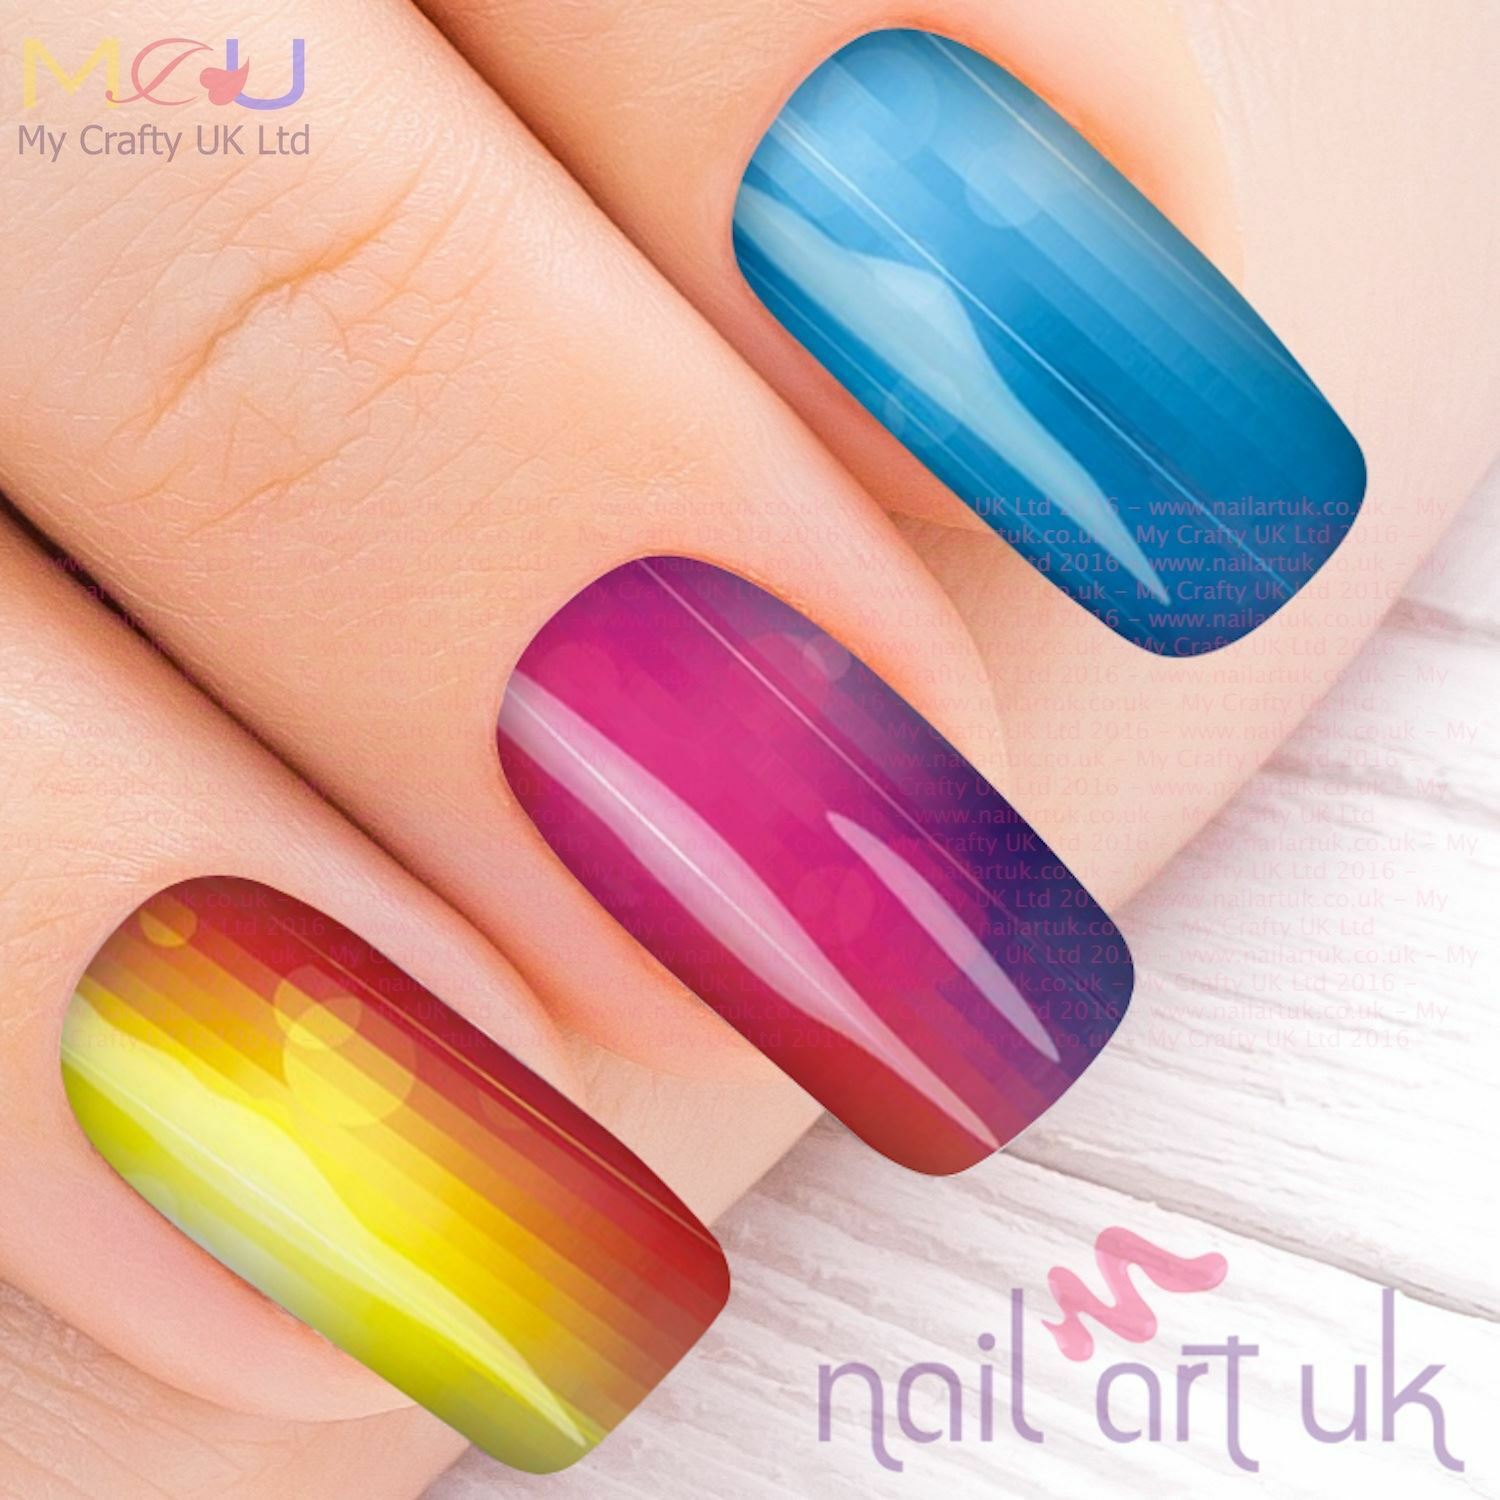 Vivid Neon Water Decal Nail Art Stickers Decals Tattoos   eBay